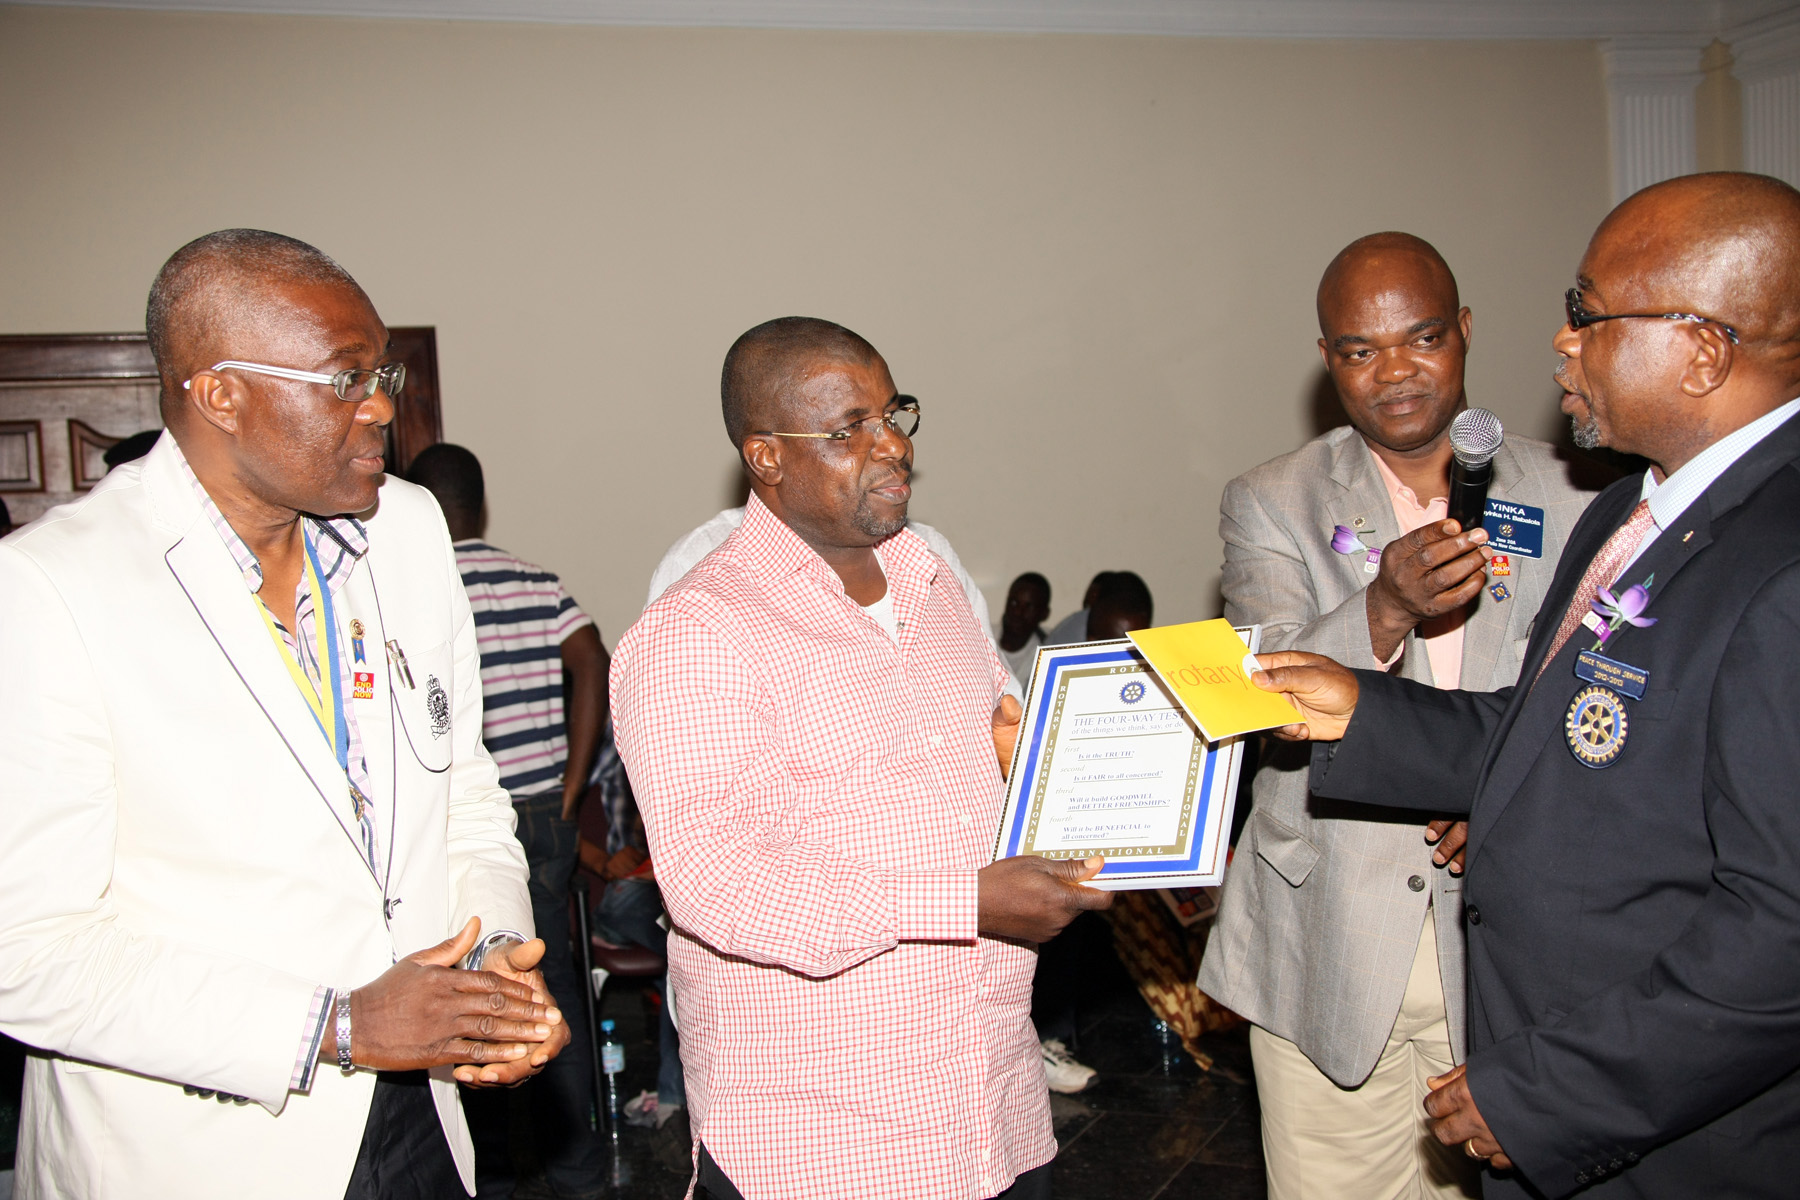 Sir Emeka Offor Recognized by Rotary International